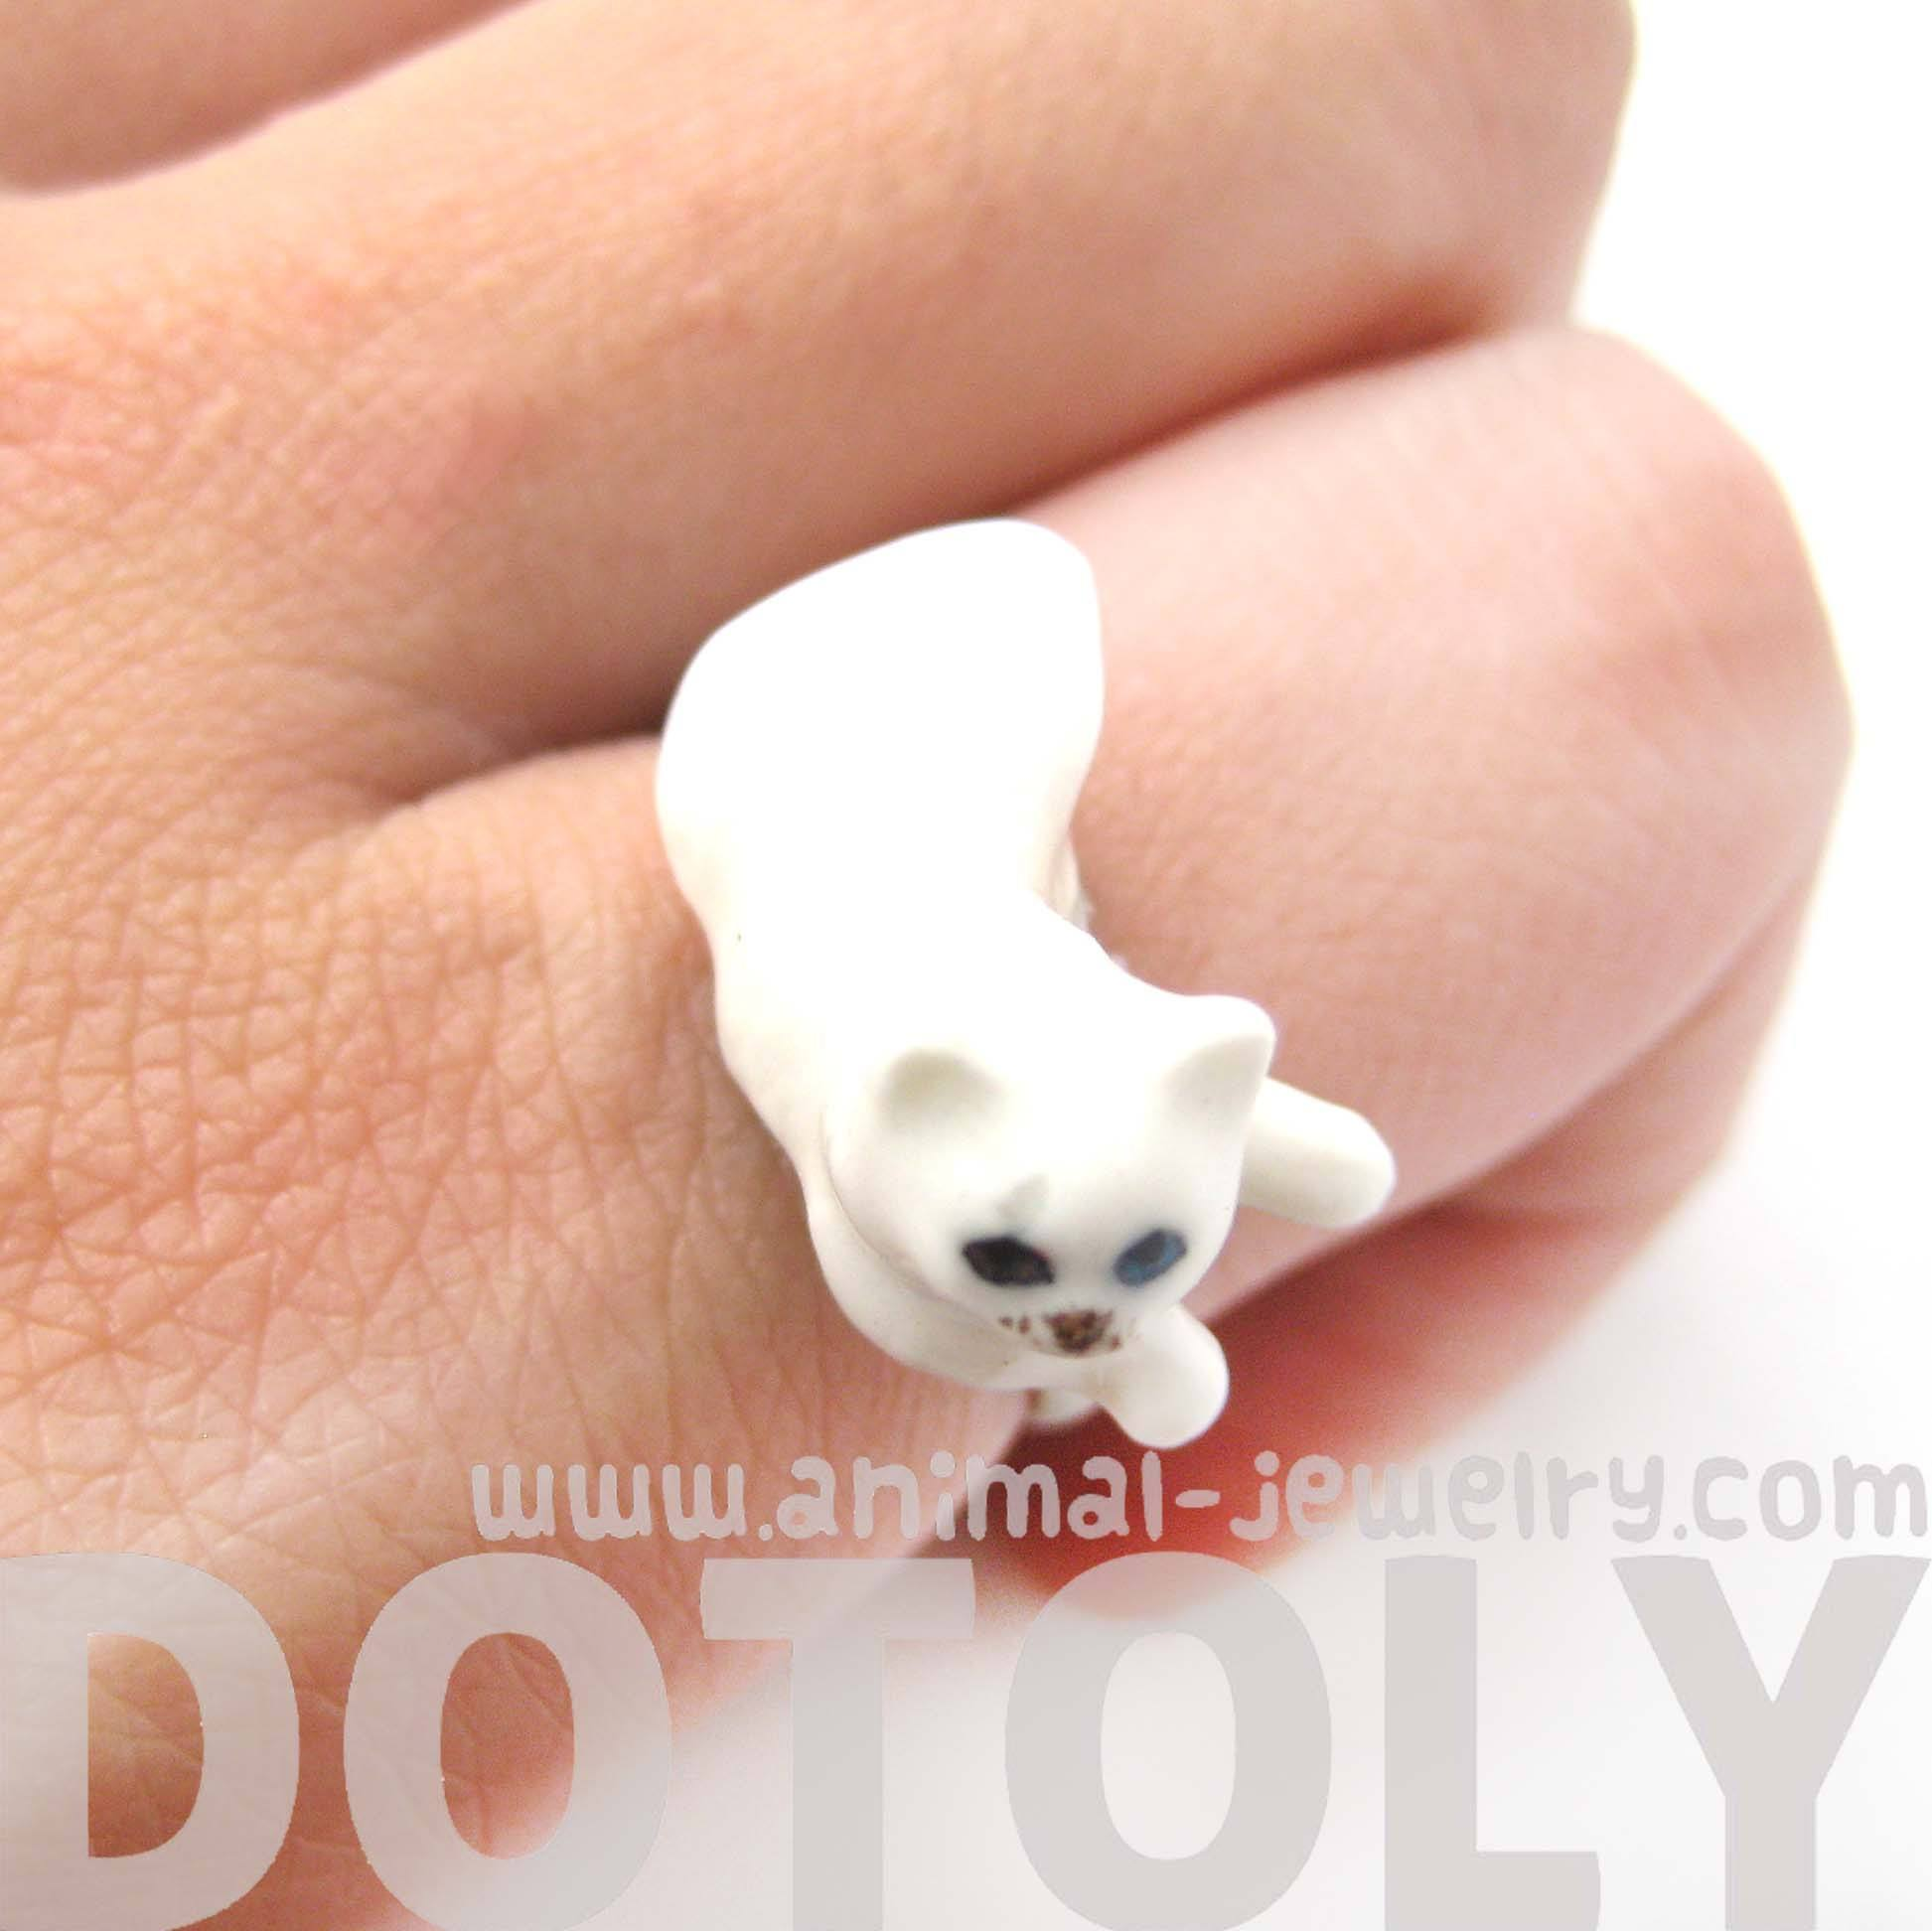 porcelain-ceramic-multi-colored-odd-eyed-kitty-cat-animal-adjustable-ring-handmade